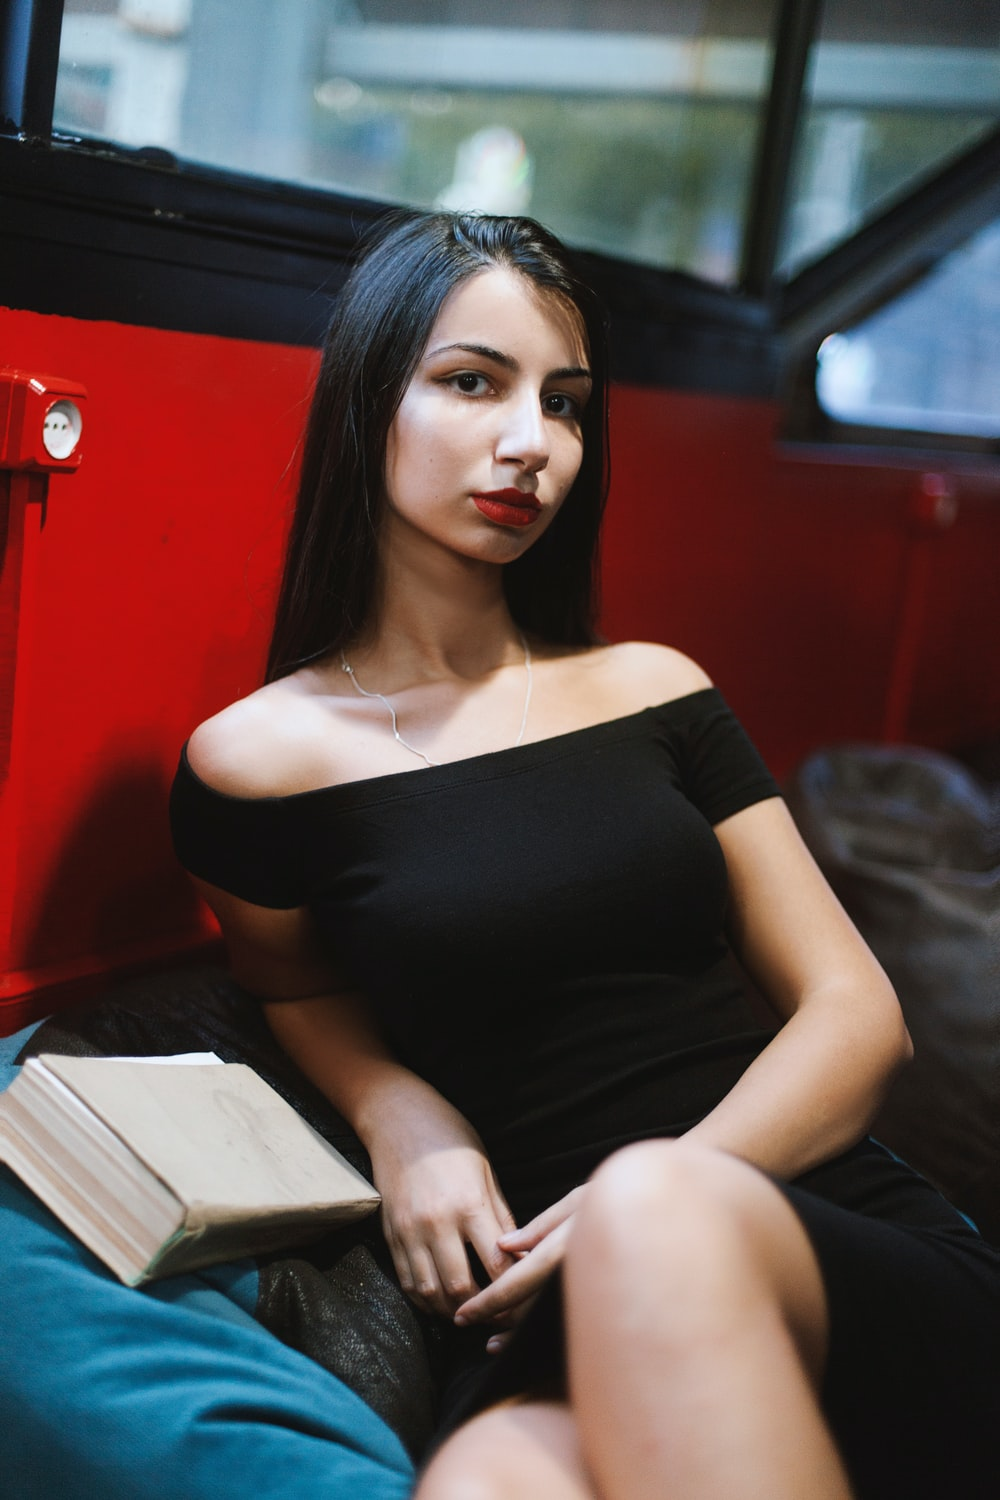 woman in black tube dress sitting on gray couch